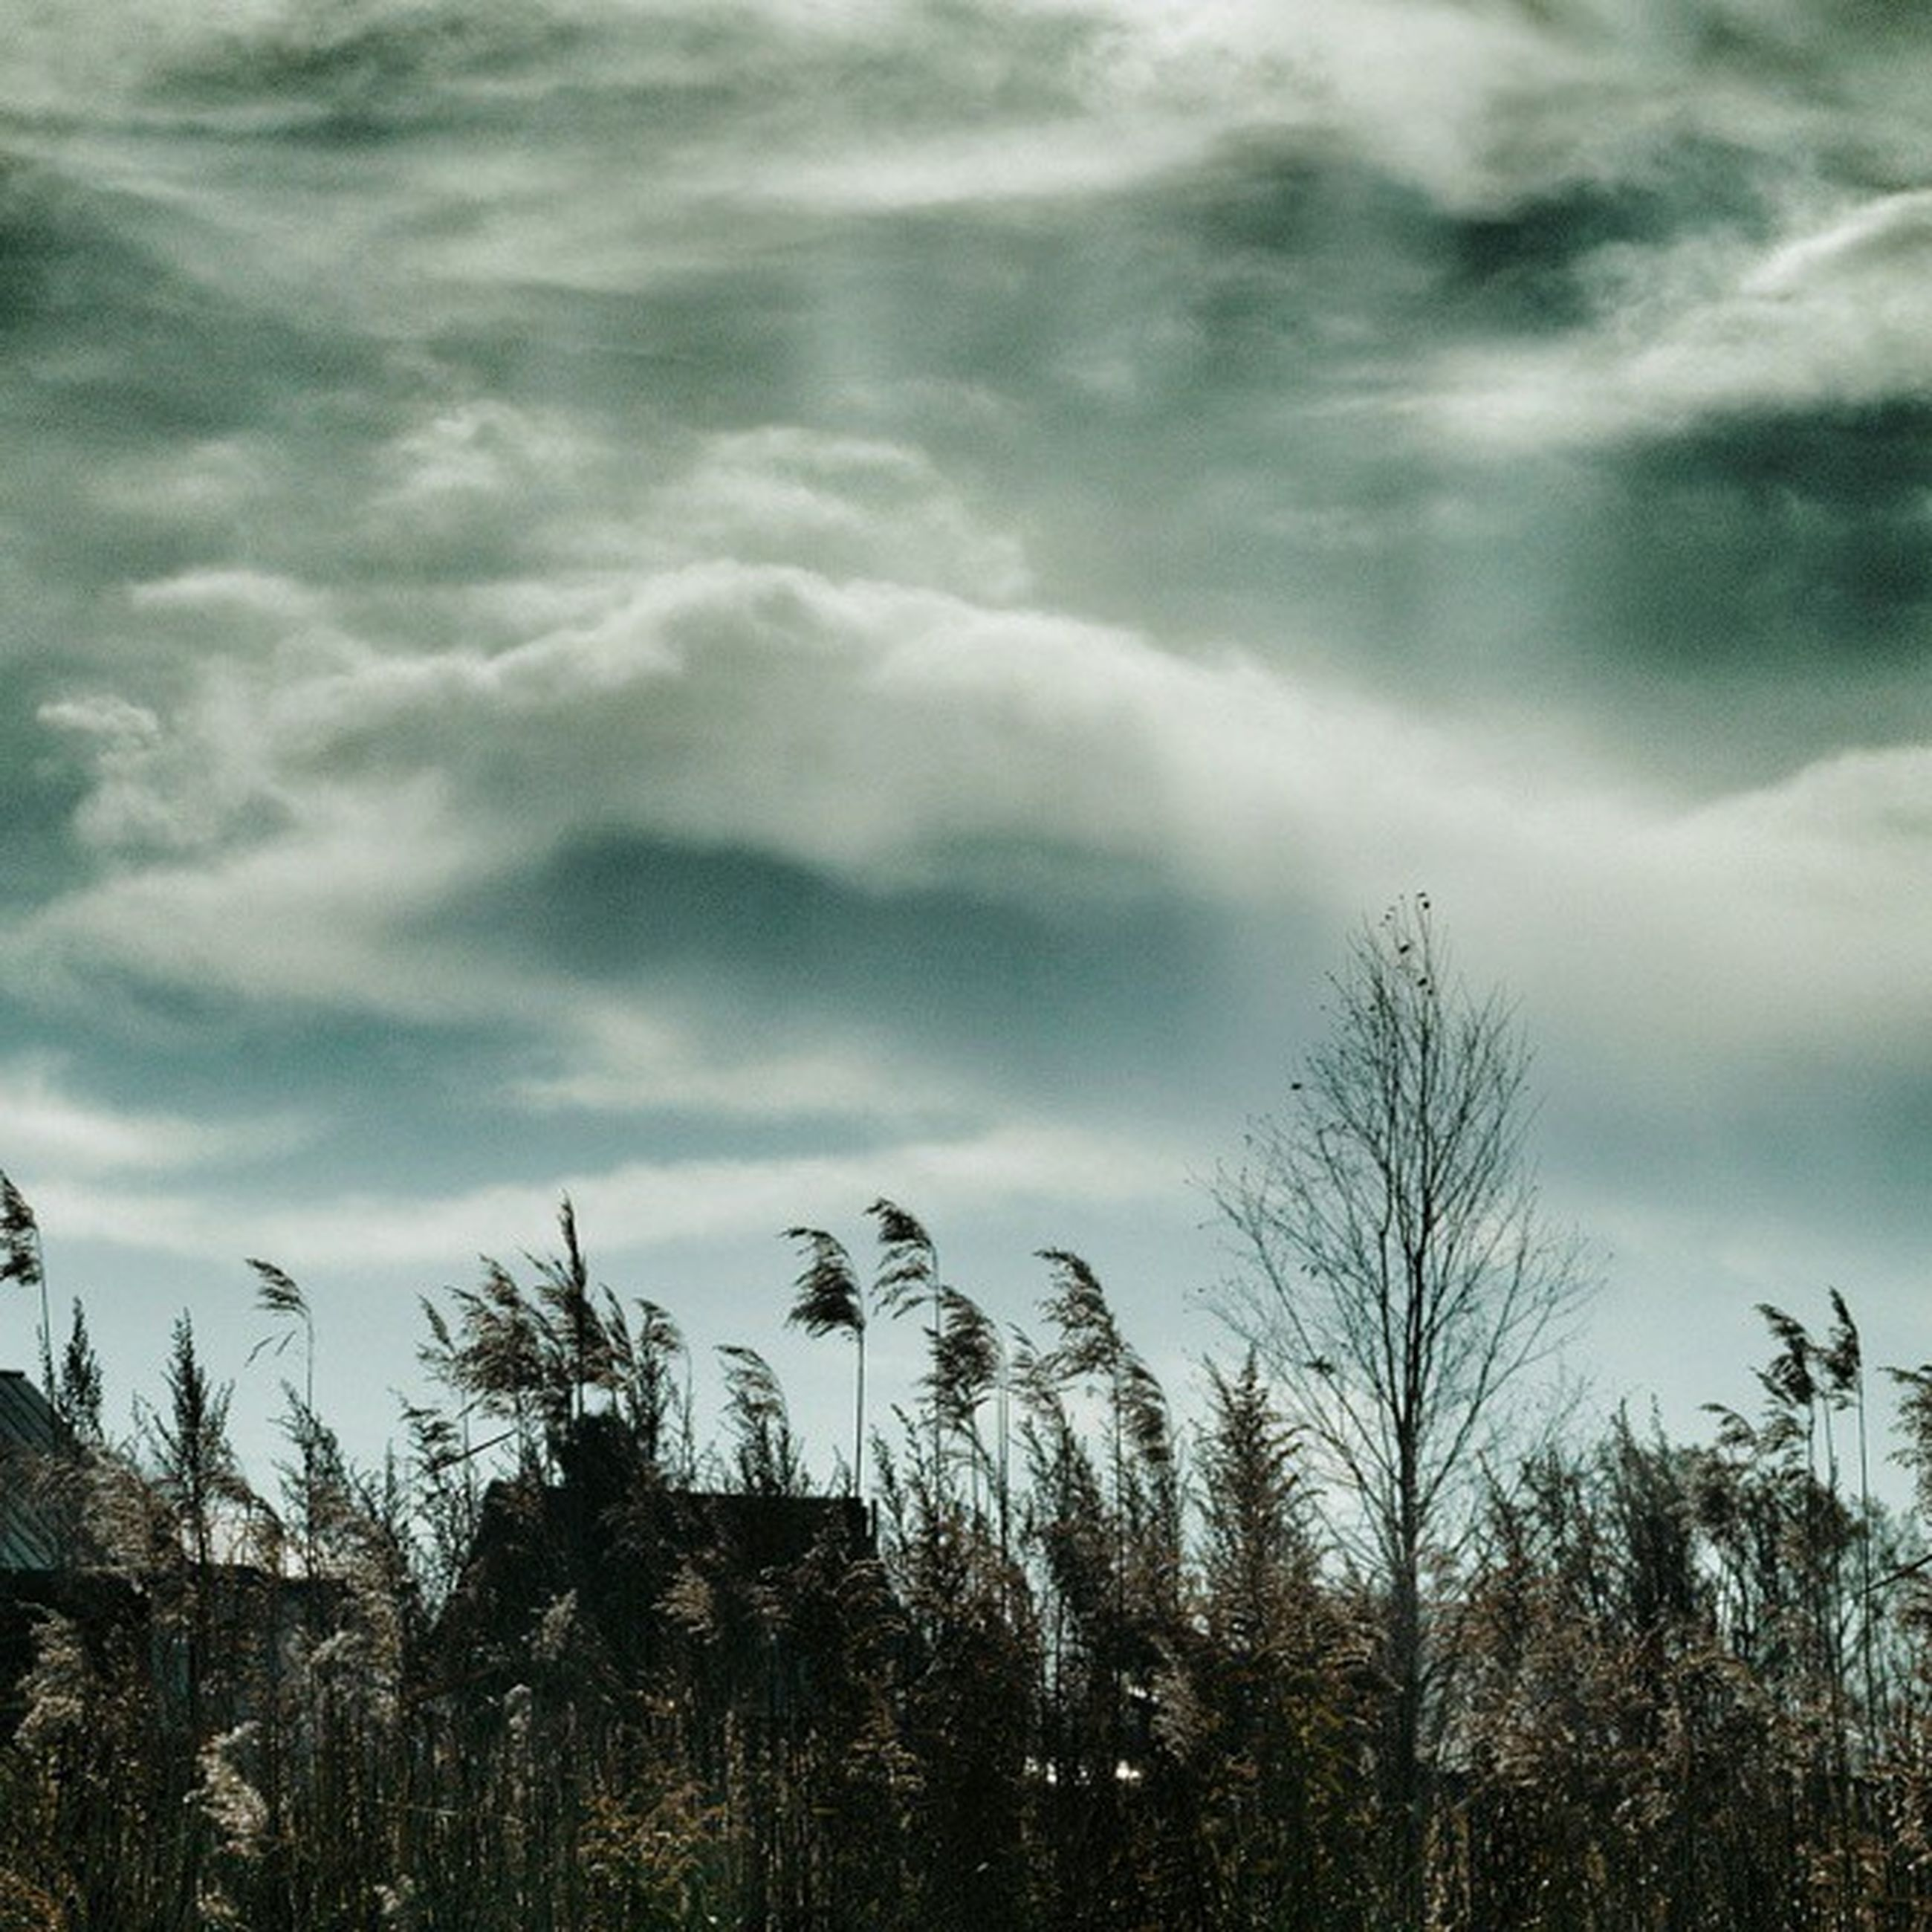 sky, cloud - sky, tranquility, tranquil scene, cloudy, growth, nature, scenics, beauty in nature, cloud, plant, field, grass, landscape, tree, weather, bare tree, outdoors, idyllic, overcast